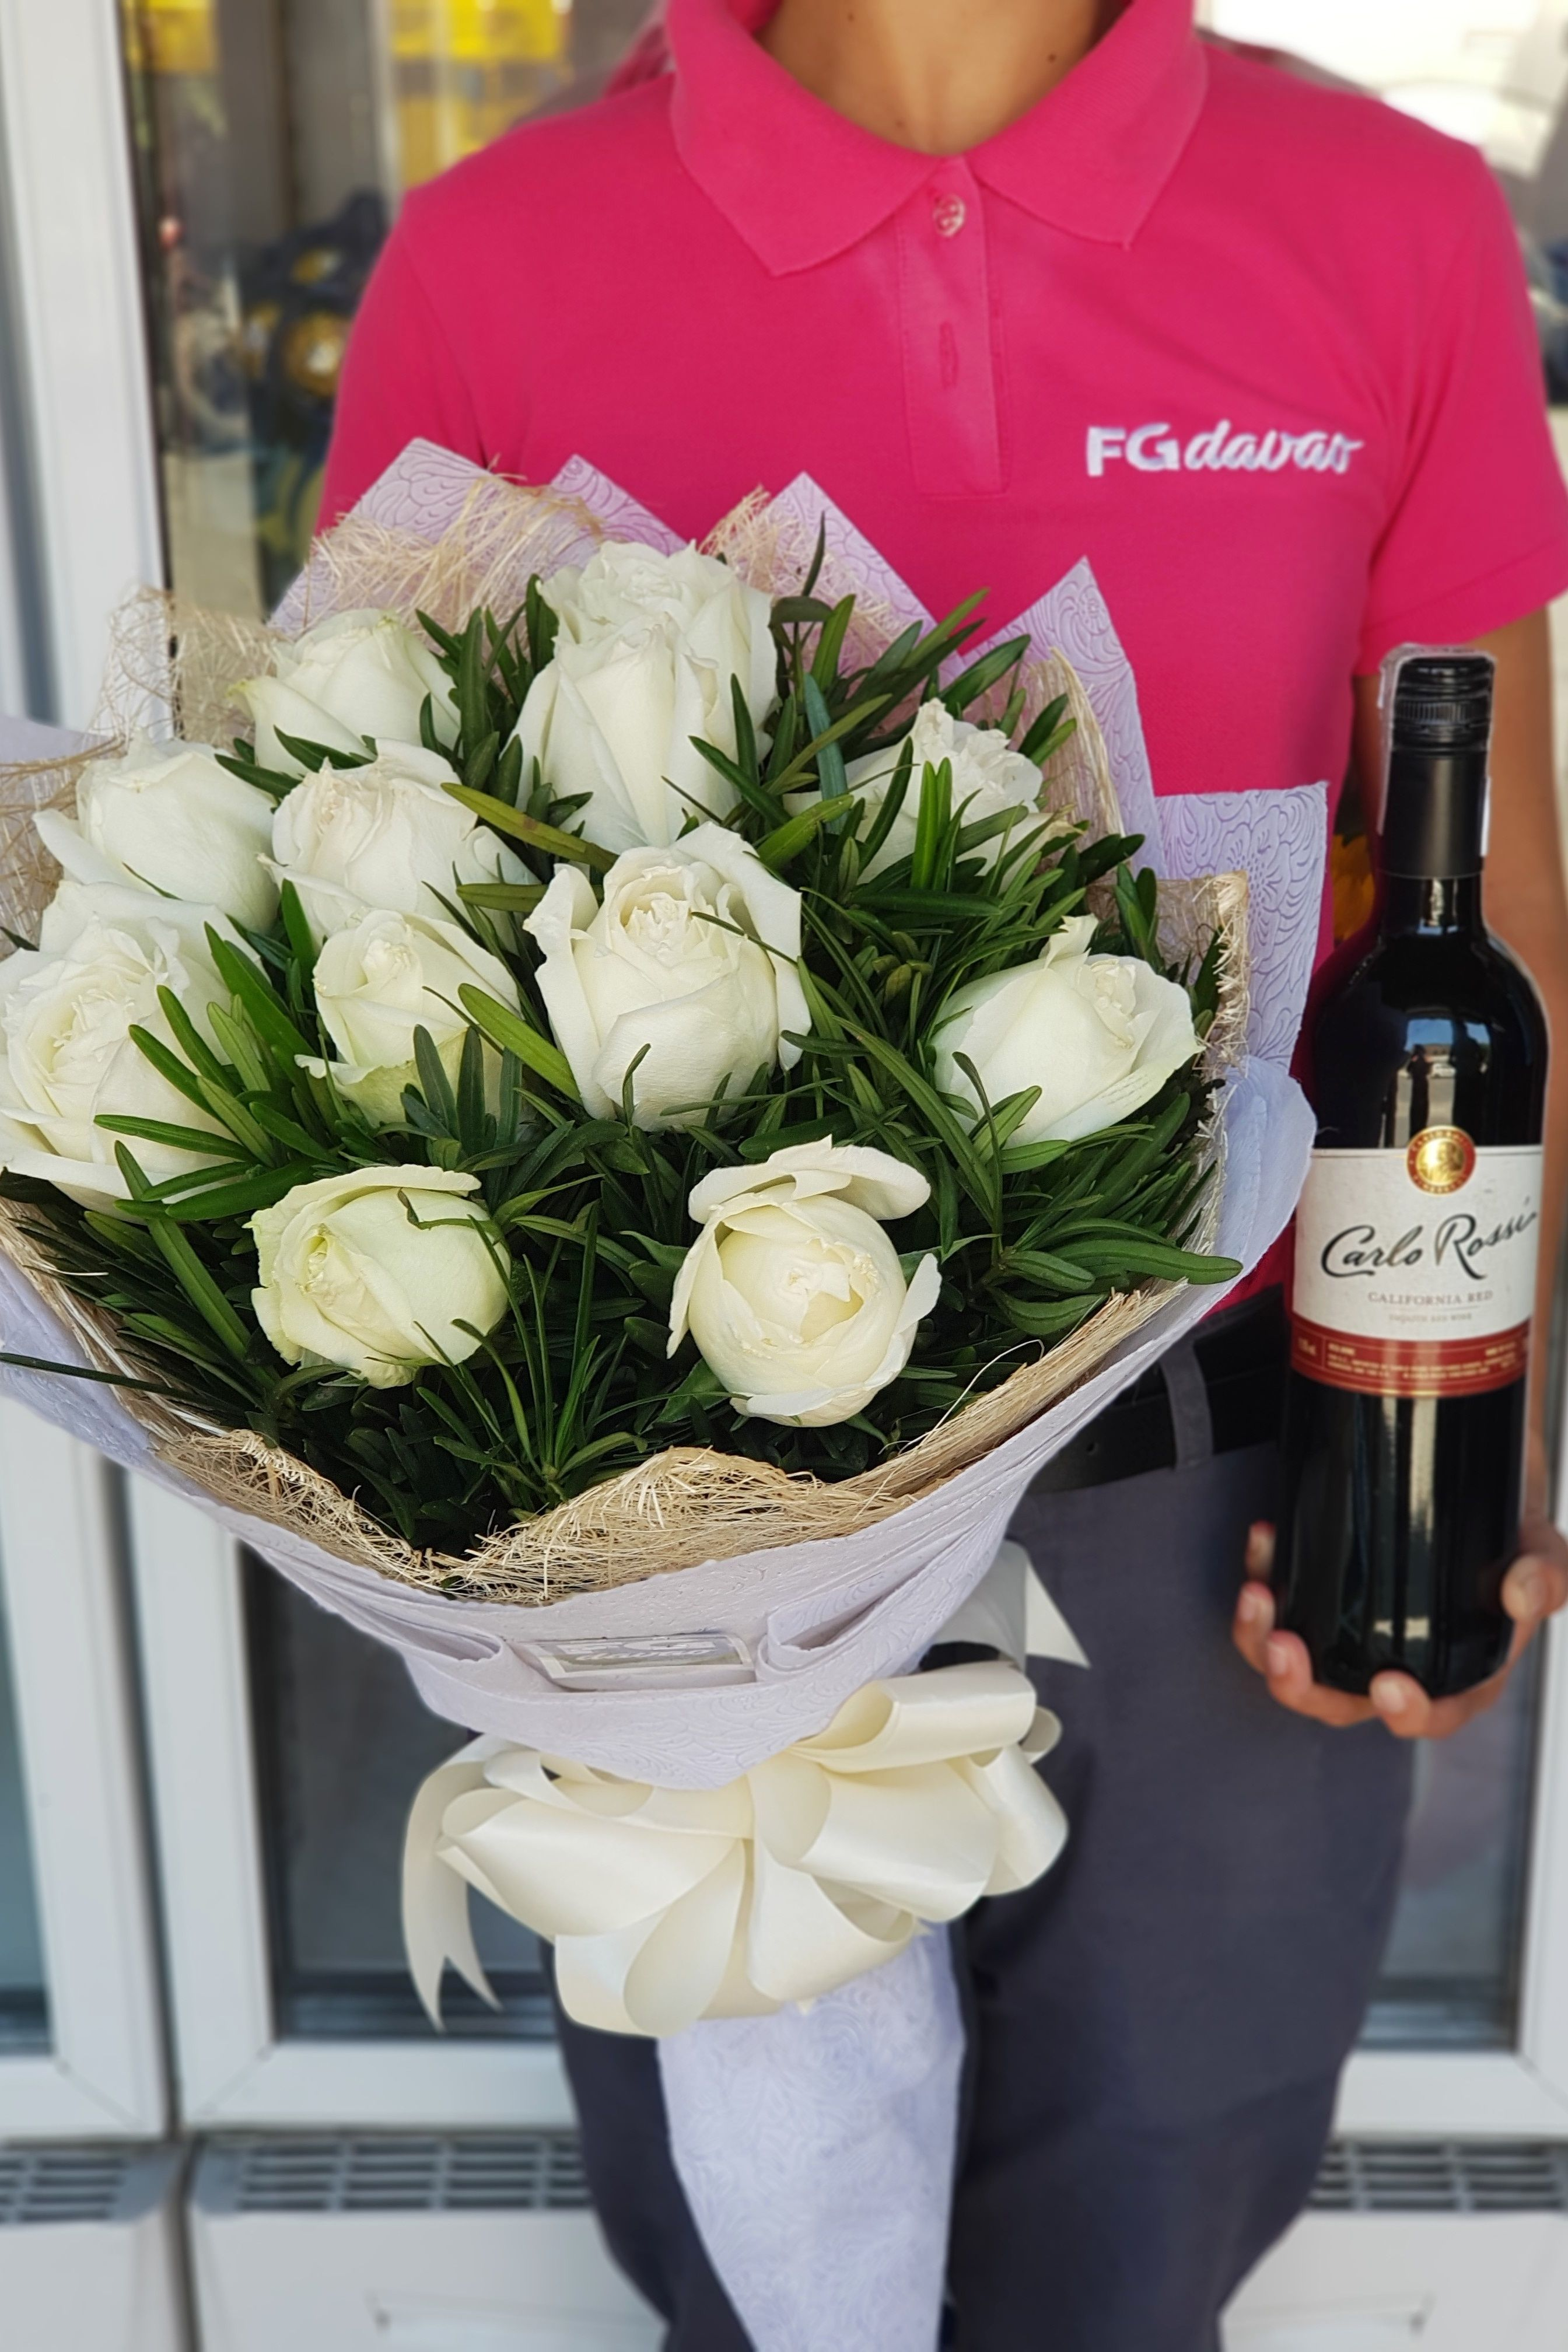 Bouquet of White Roses and Wine Send Flowers Price List